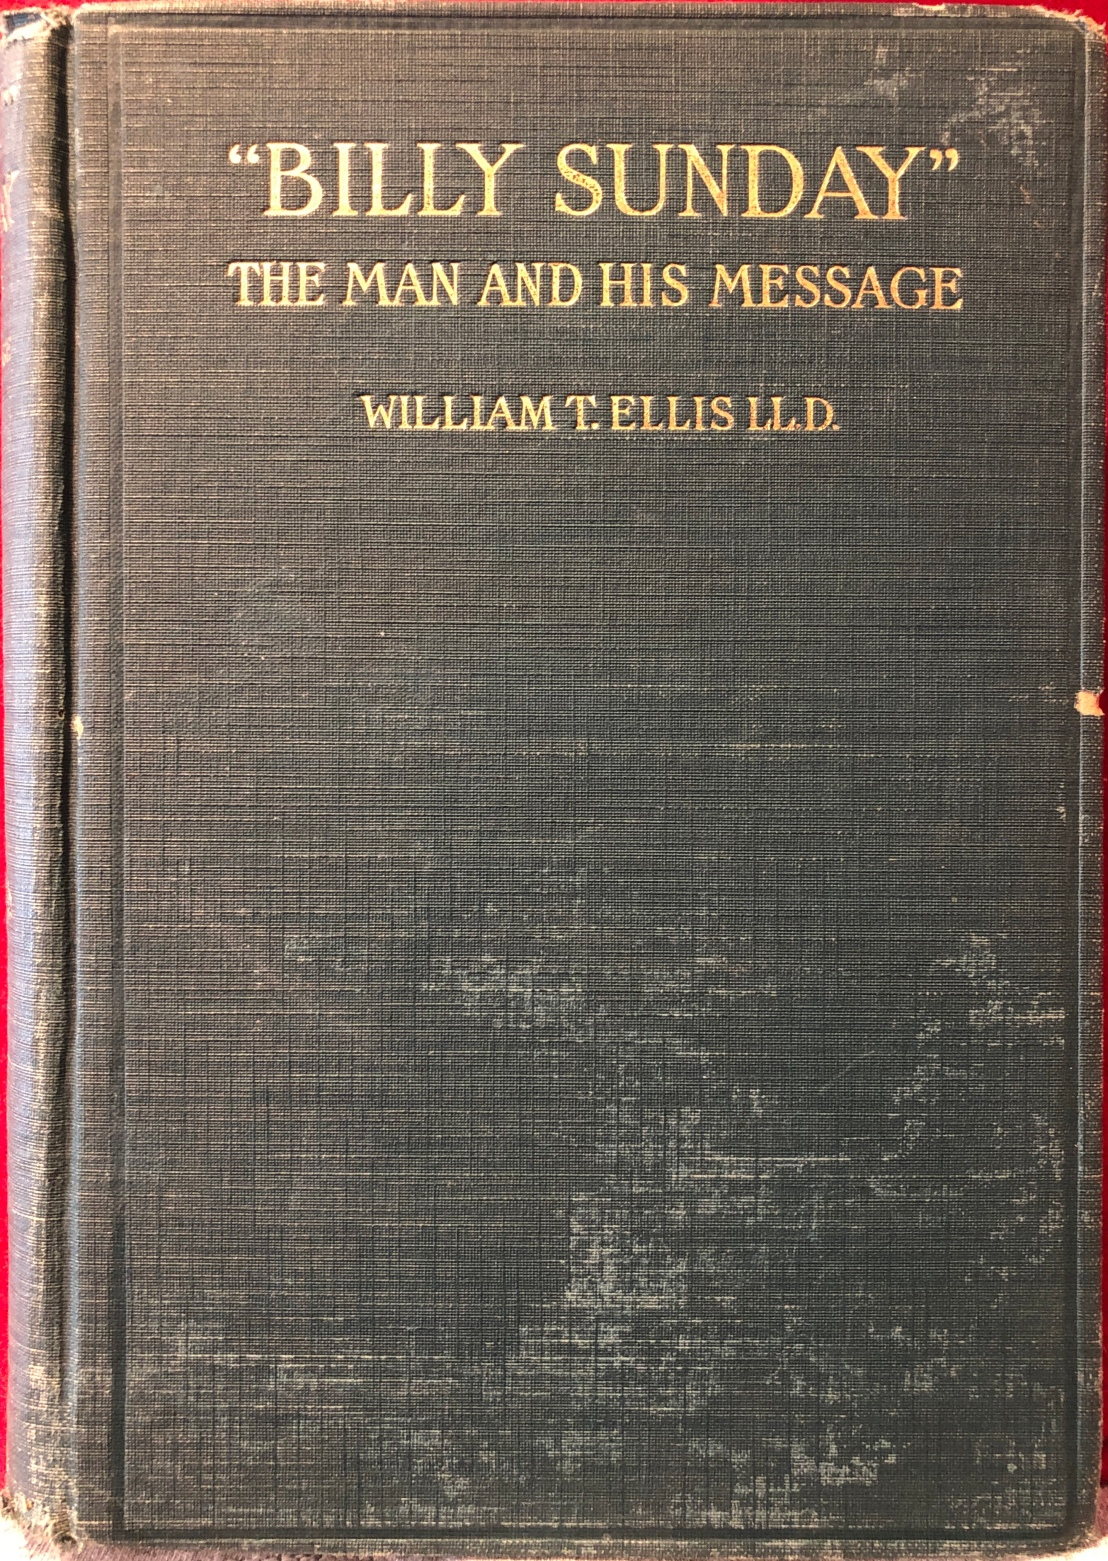 ellis_billy_sunday_cover